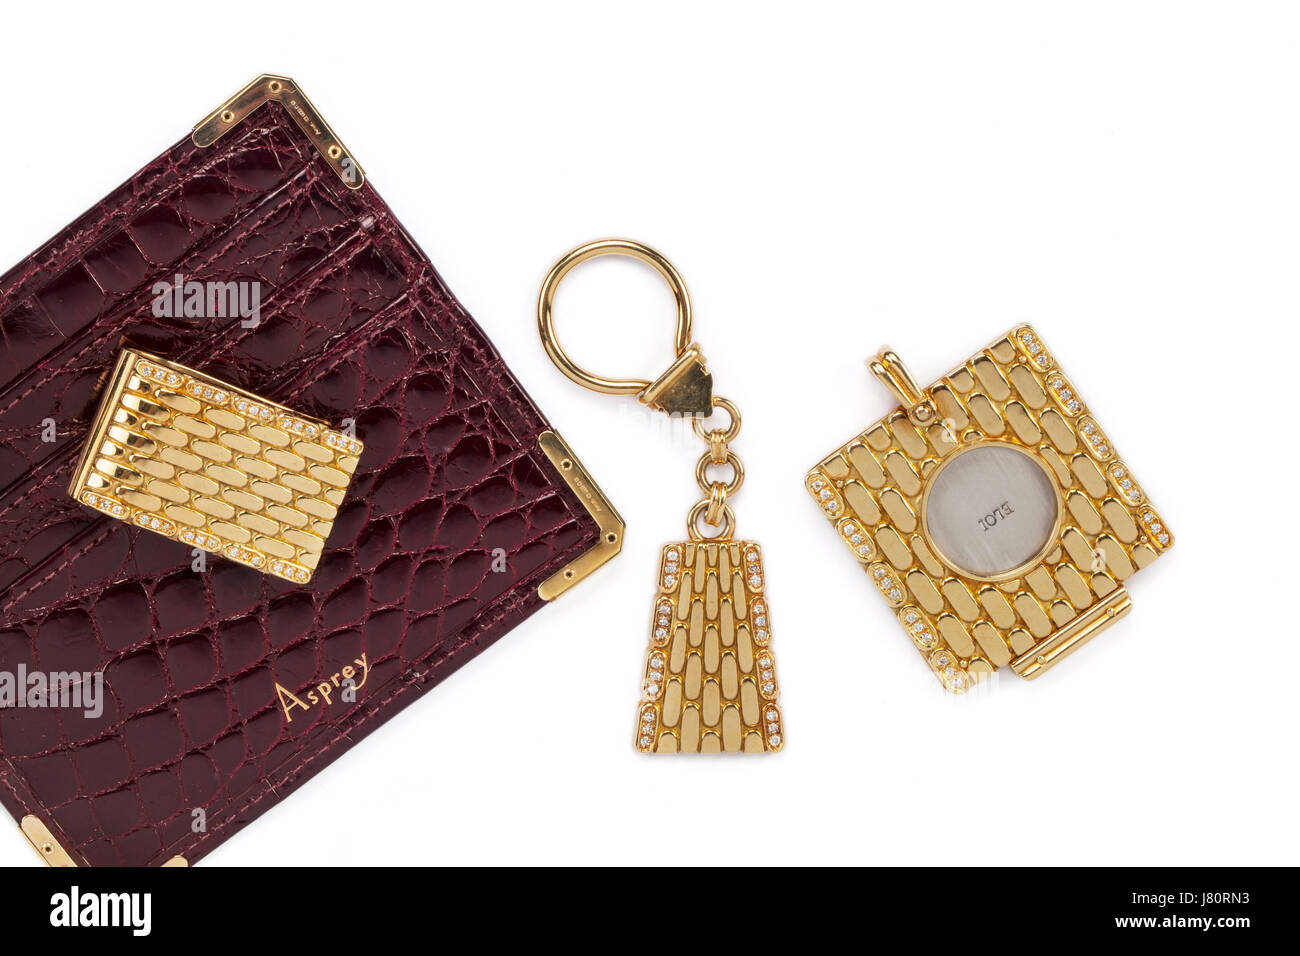 Asprey matching 18ct gold and diamond key ring, money clip, cigar cutter and card wallet. - Stock Image